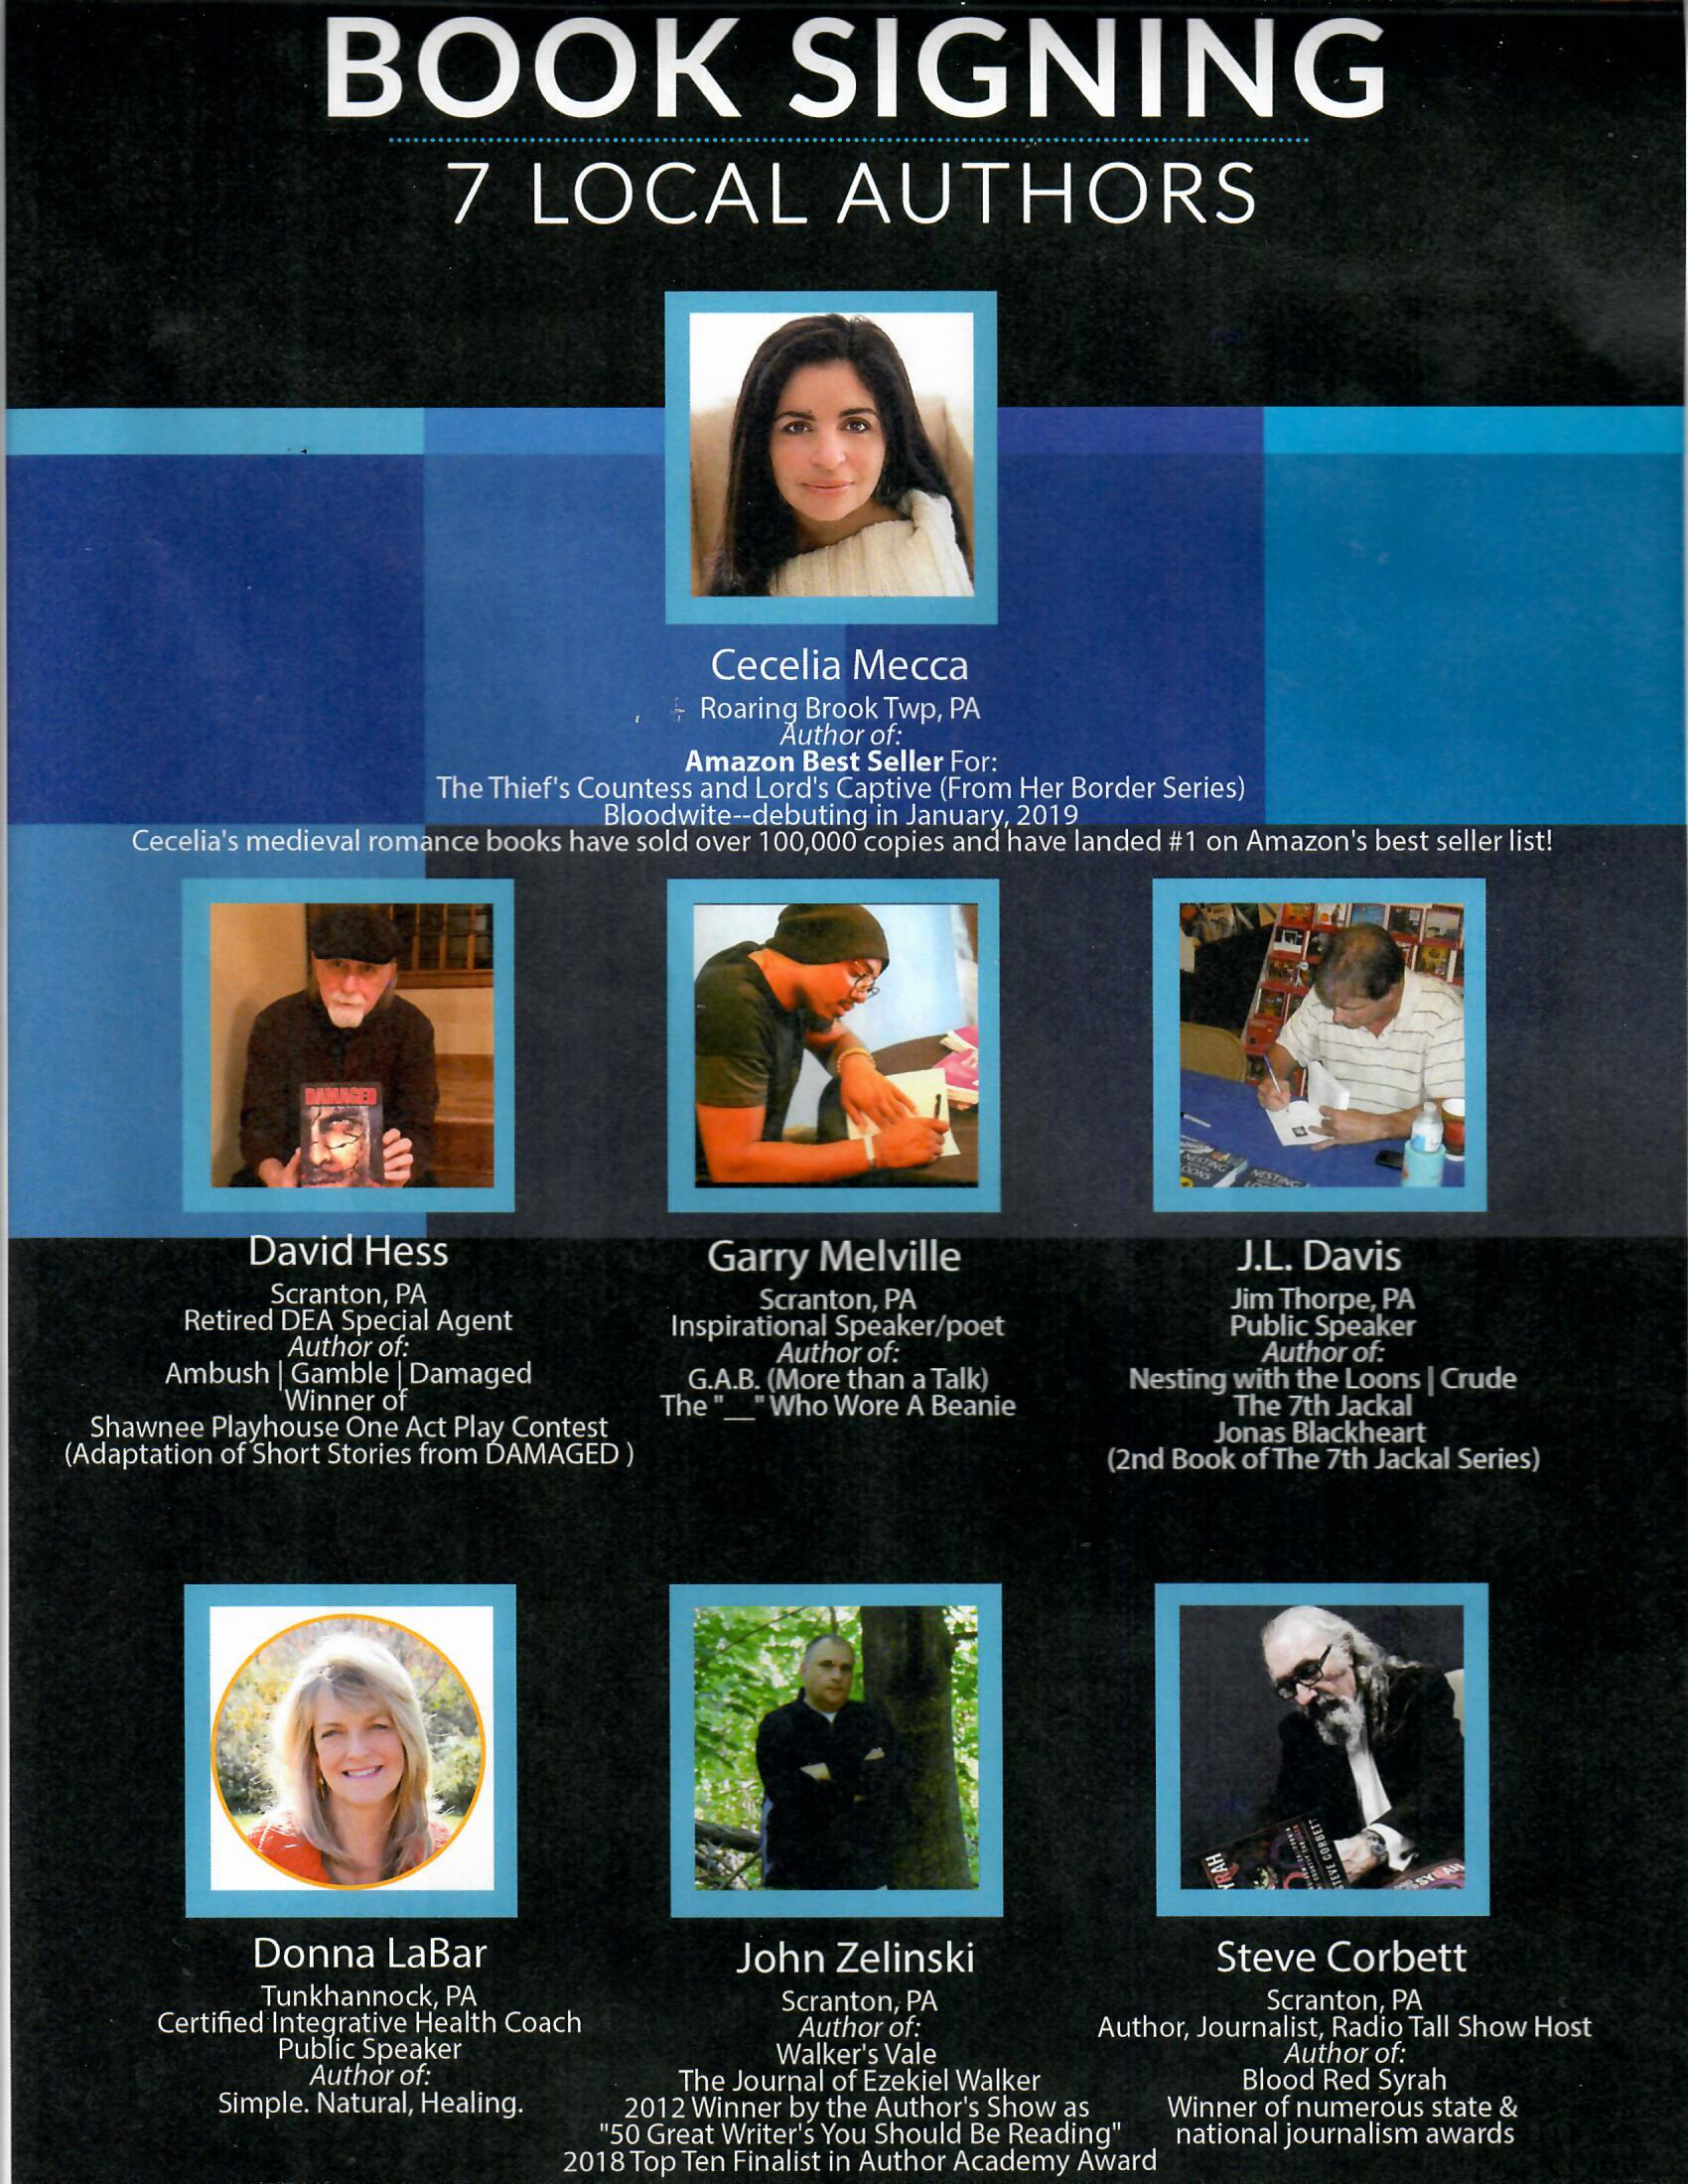 Seven Local Authors Book Signing